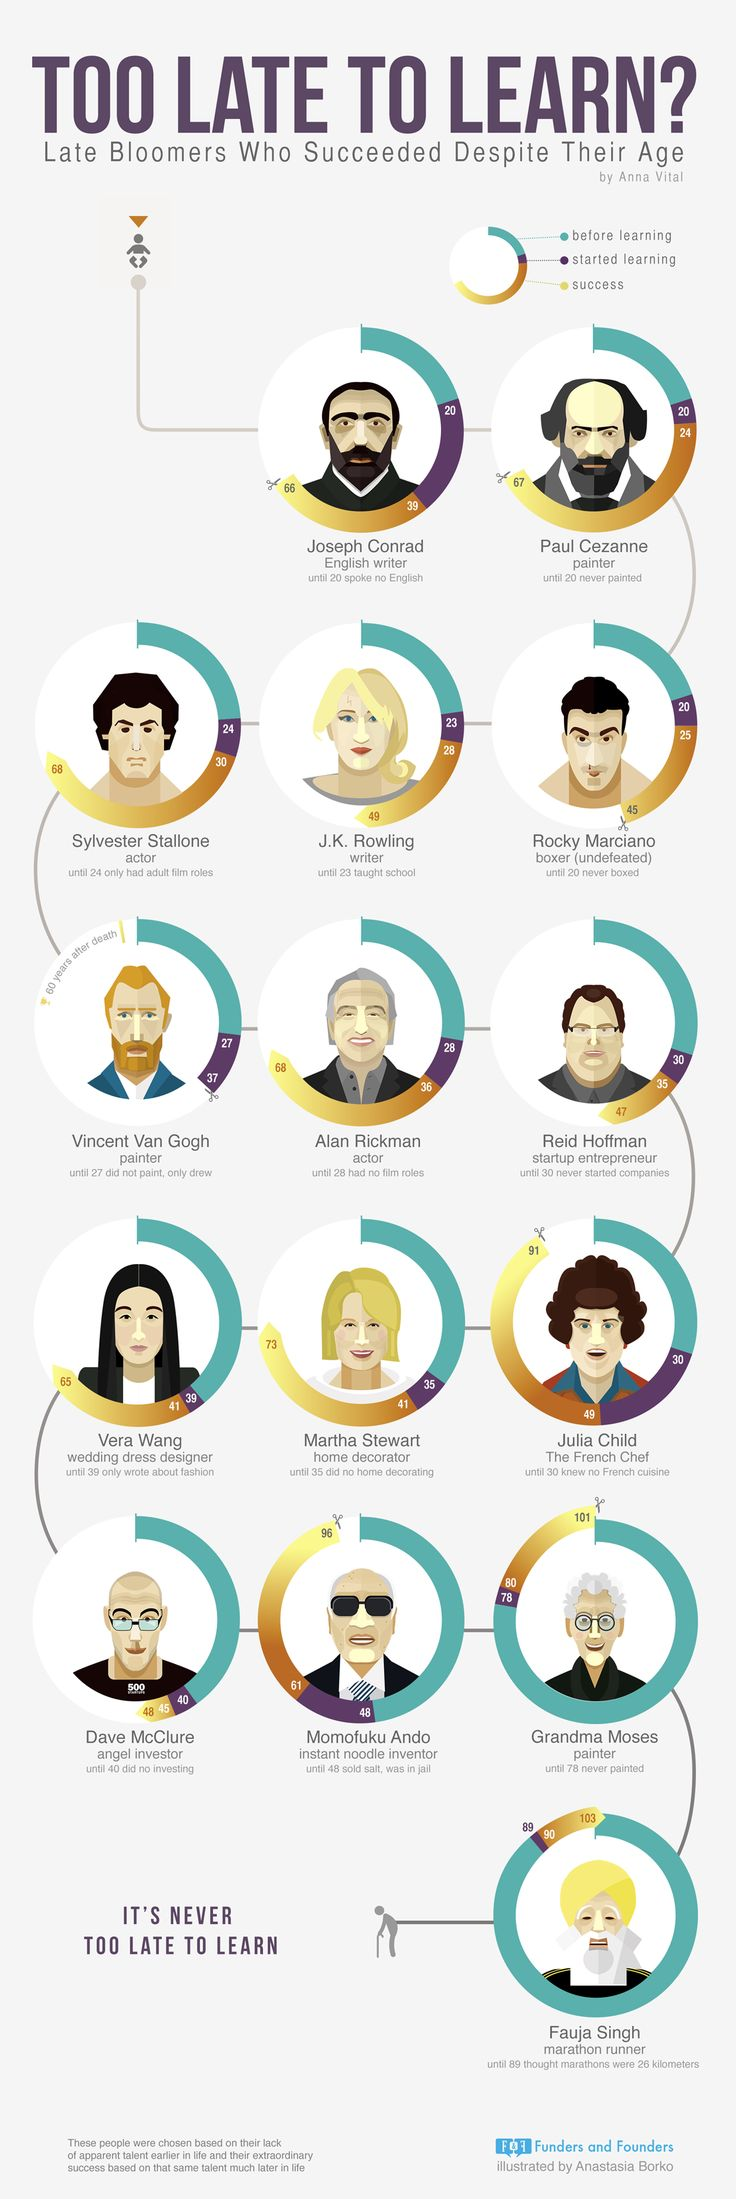 The It's Never Too Late to Learn Infographic presents famous late bloomers who managed to succeed late in life and how they did it.